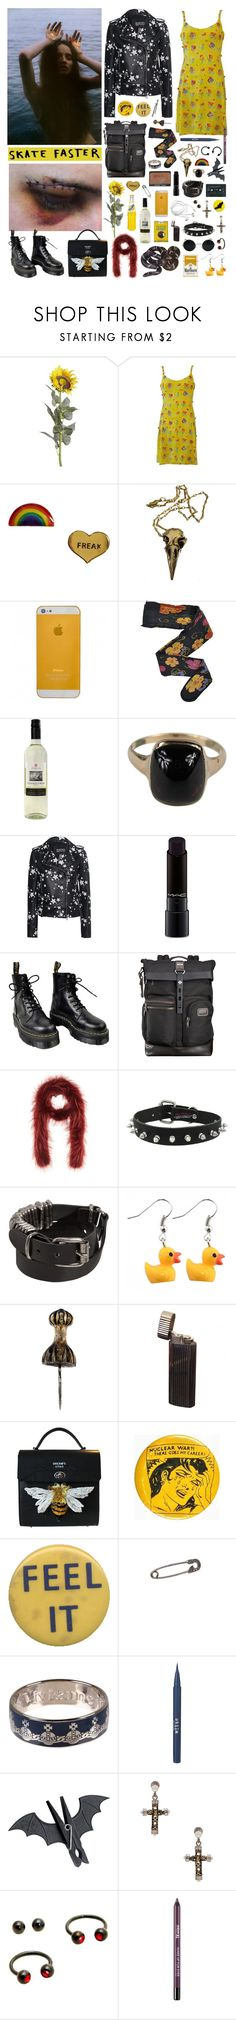 """""""Uncontroling girl: I can't be pretty cause I'm crazy, but I just wanna try"""" by nothingisnormal ❤ liked on Polyvore featuring Pier 1 Imports, Versace, Me & Zena, Pamela Love, HYD, SLY 010, MAC Cosmetics, Dr. Martens, Tumi and Prada"""